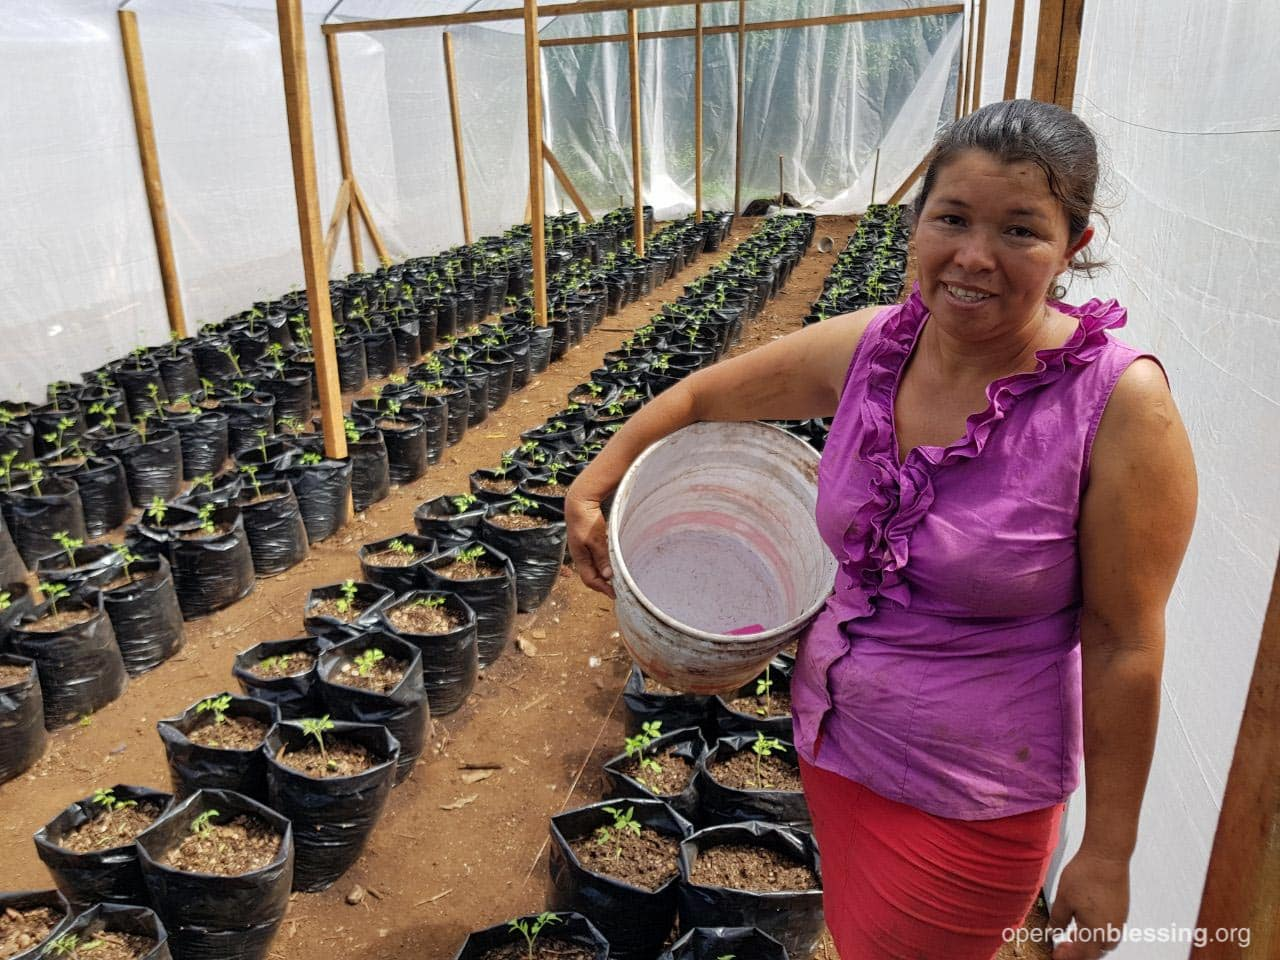 Bety smiles as she stands in front of the new crops grown in greenhouses  built by